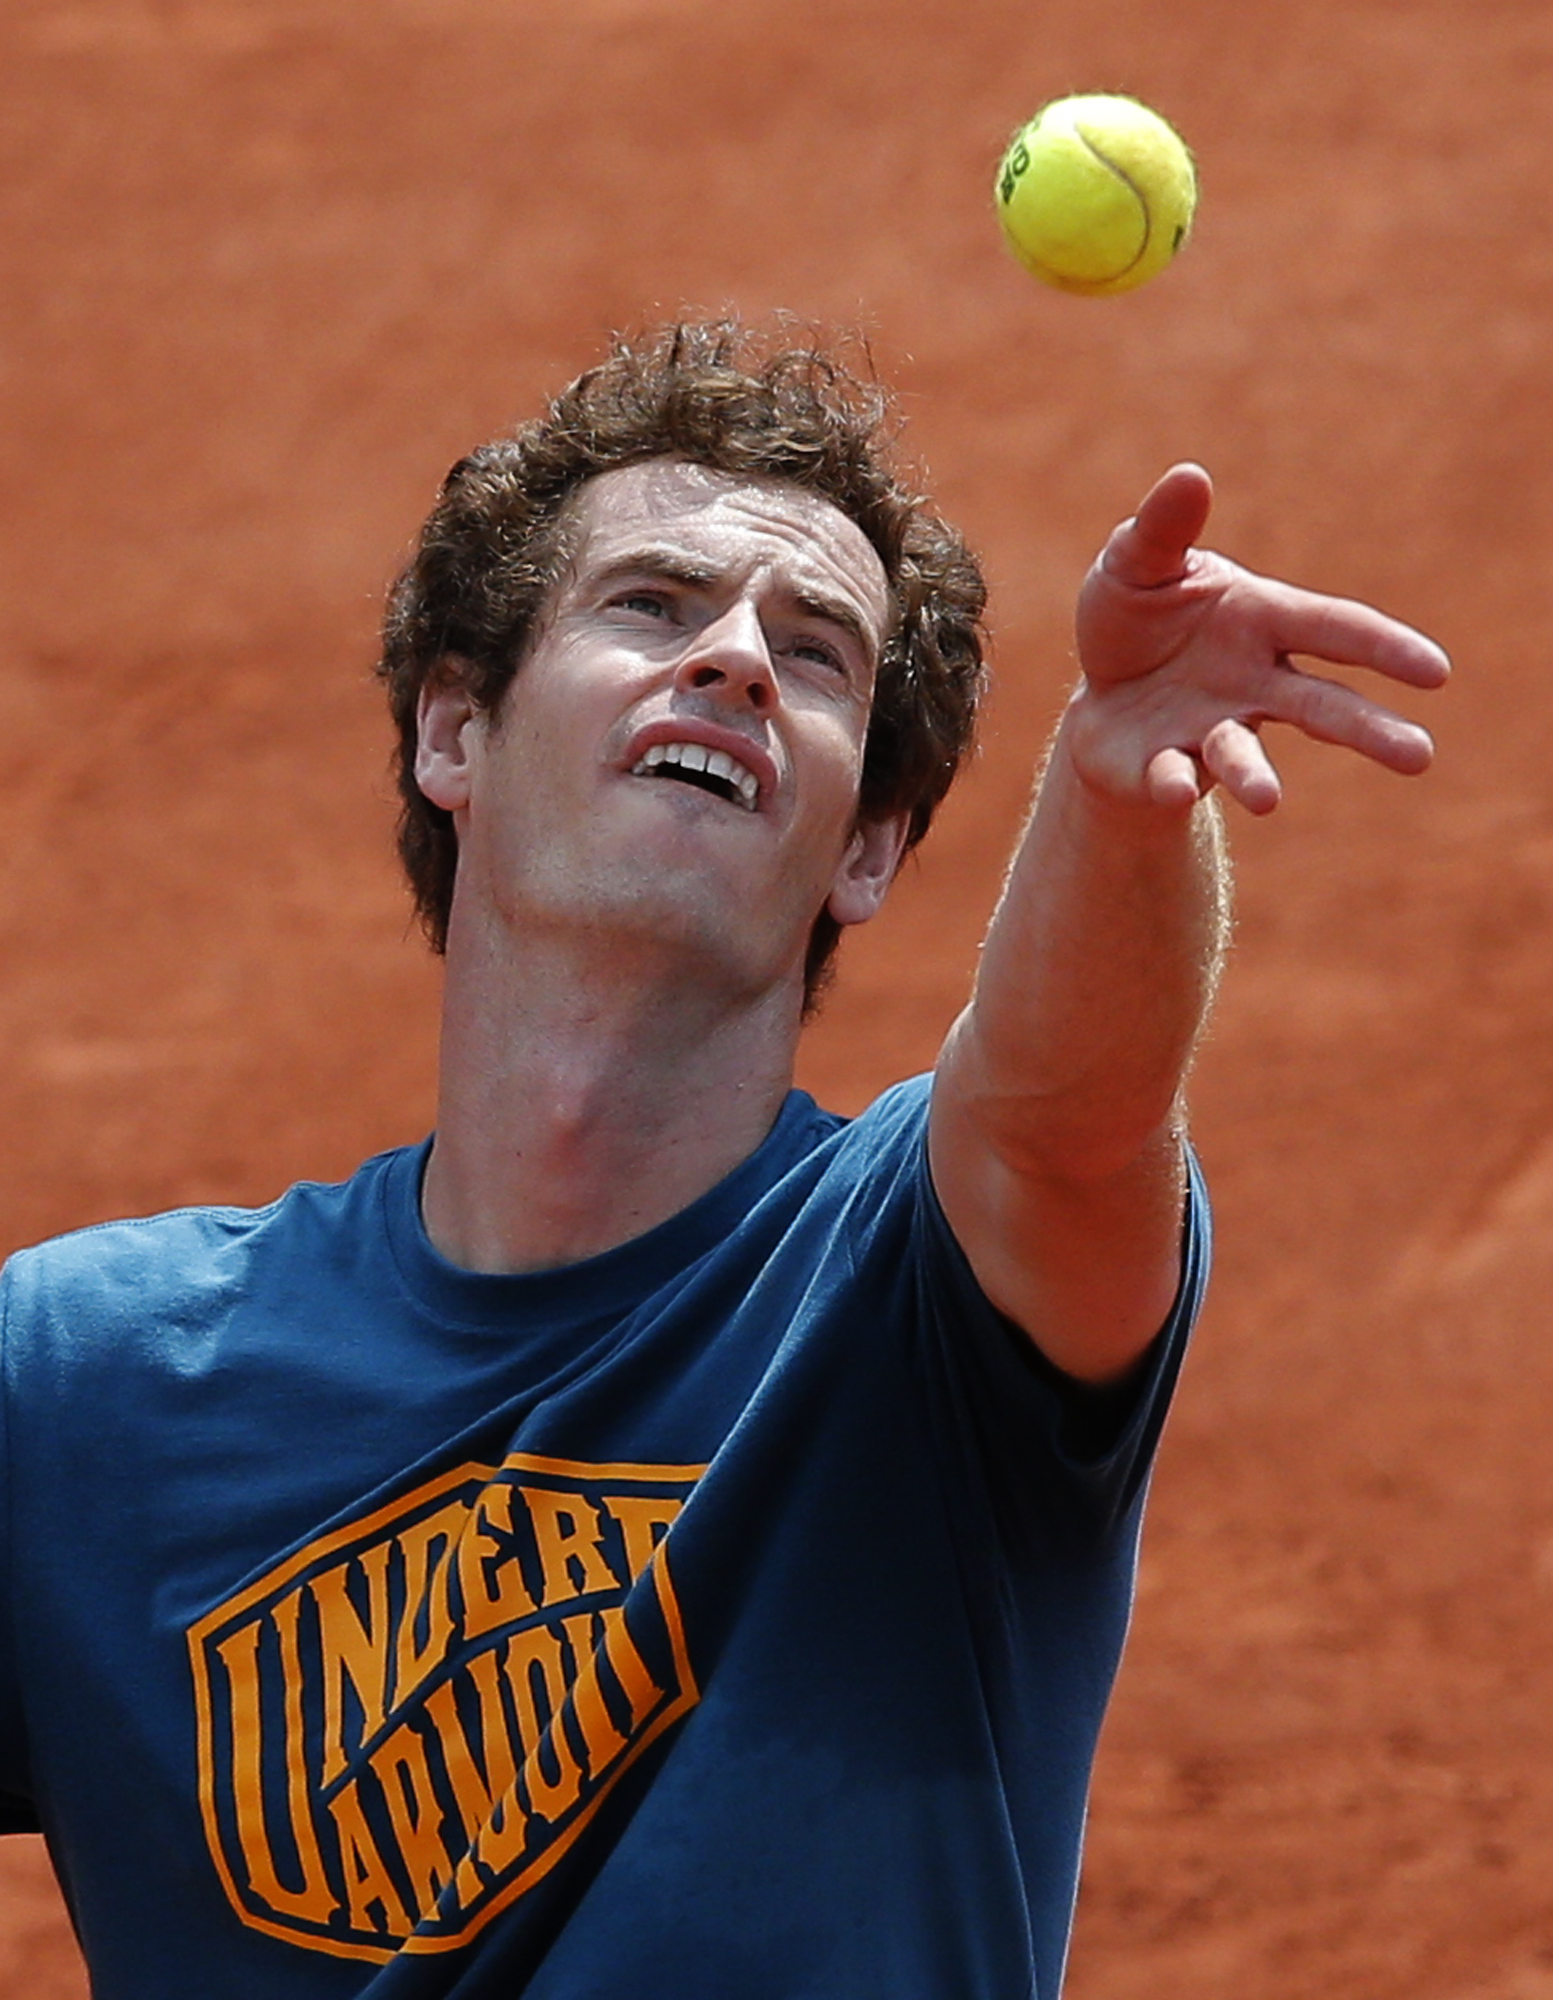 Britain's Andy Murray serves during a training session of the French Open tennis tournament at the Roland Garros stadium, in Paris, Saturday, May 21, 2016 . The French Open starts Sunday May 22. (AP Photo/Christophe Ena)